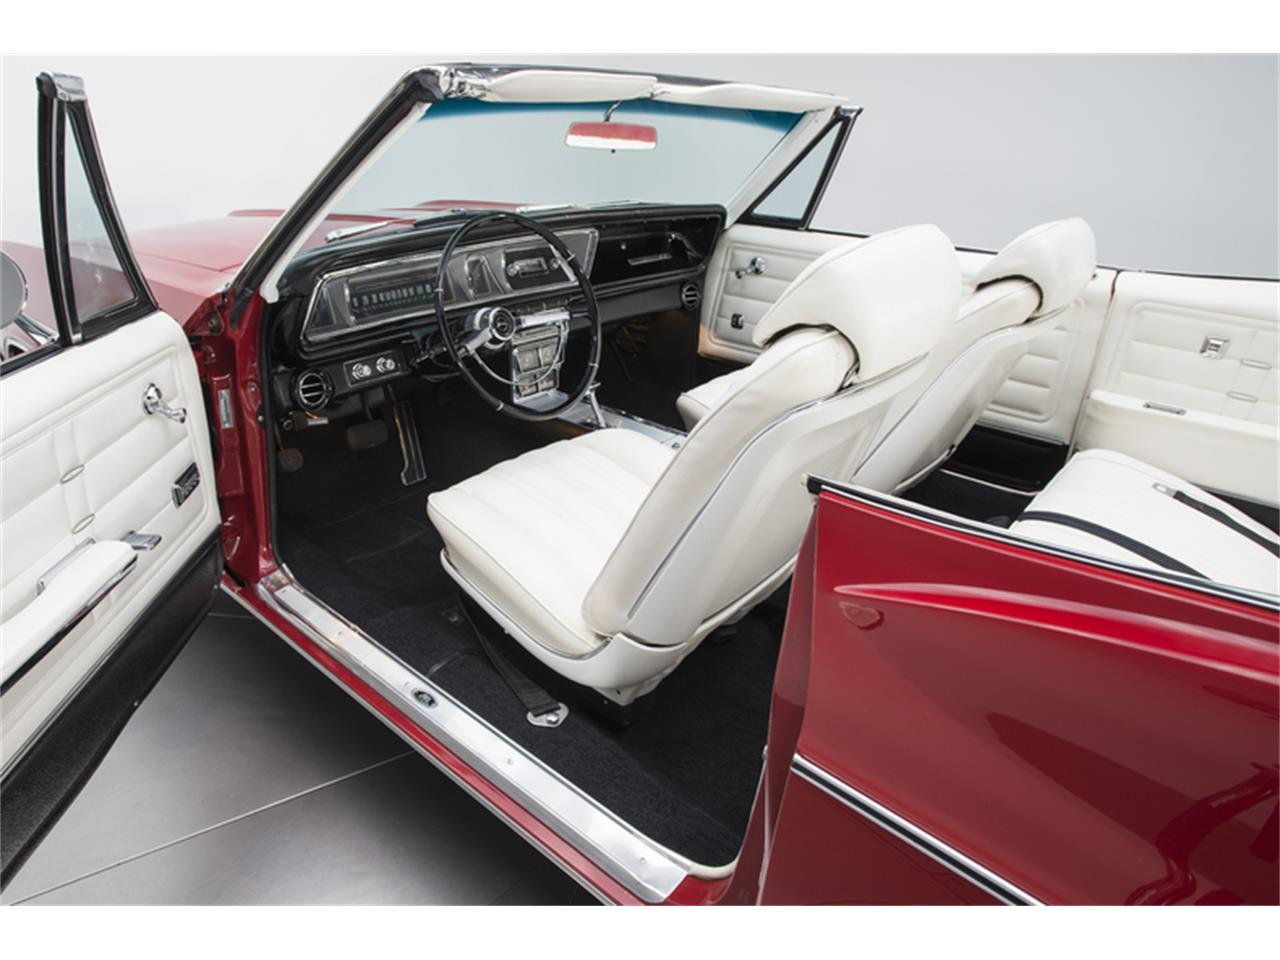 Large Picture of Classic '66 Chevrolet Impala SS located in North Carolina - $59,900.00 - L8OP